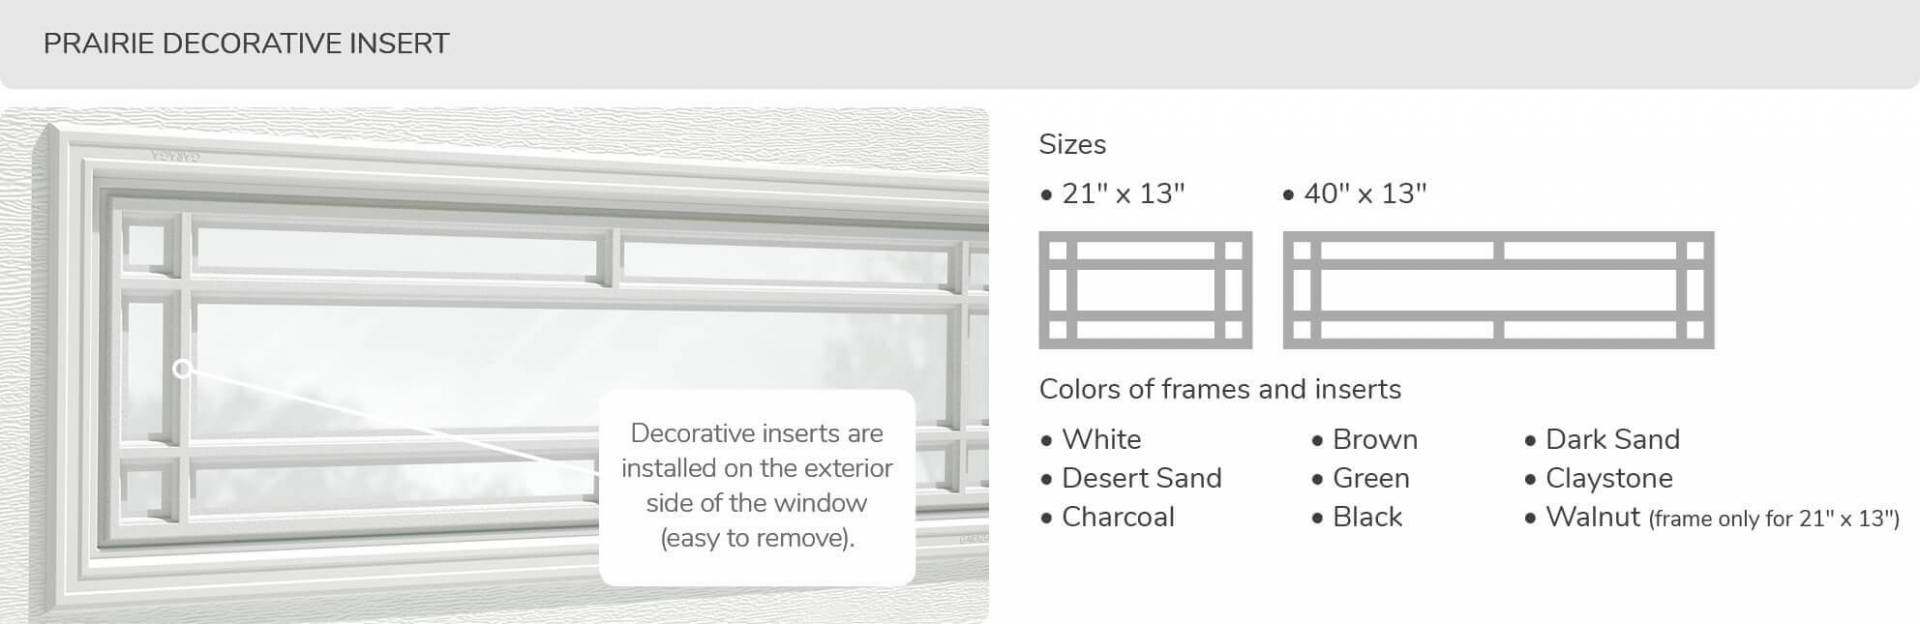 Prairie Decorative Insert, 21' x 13' and 40' x 13', available for door R-16